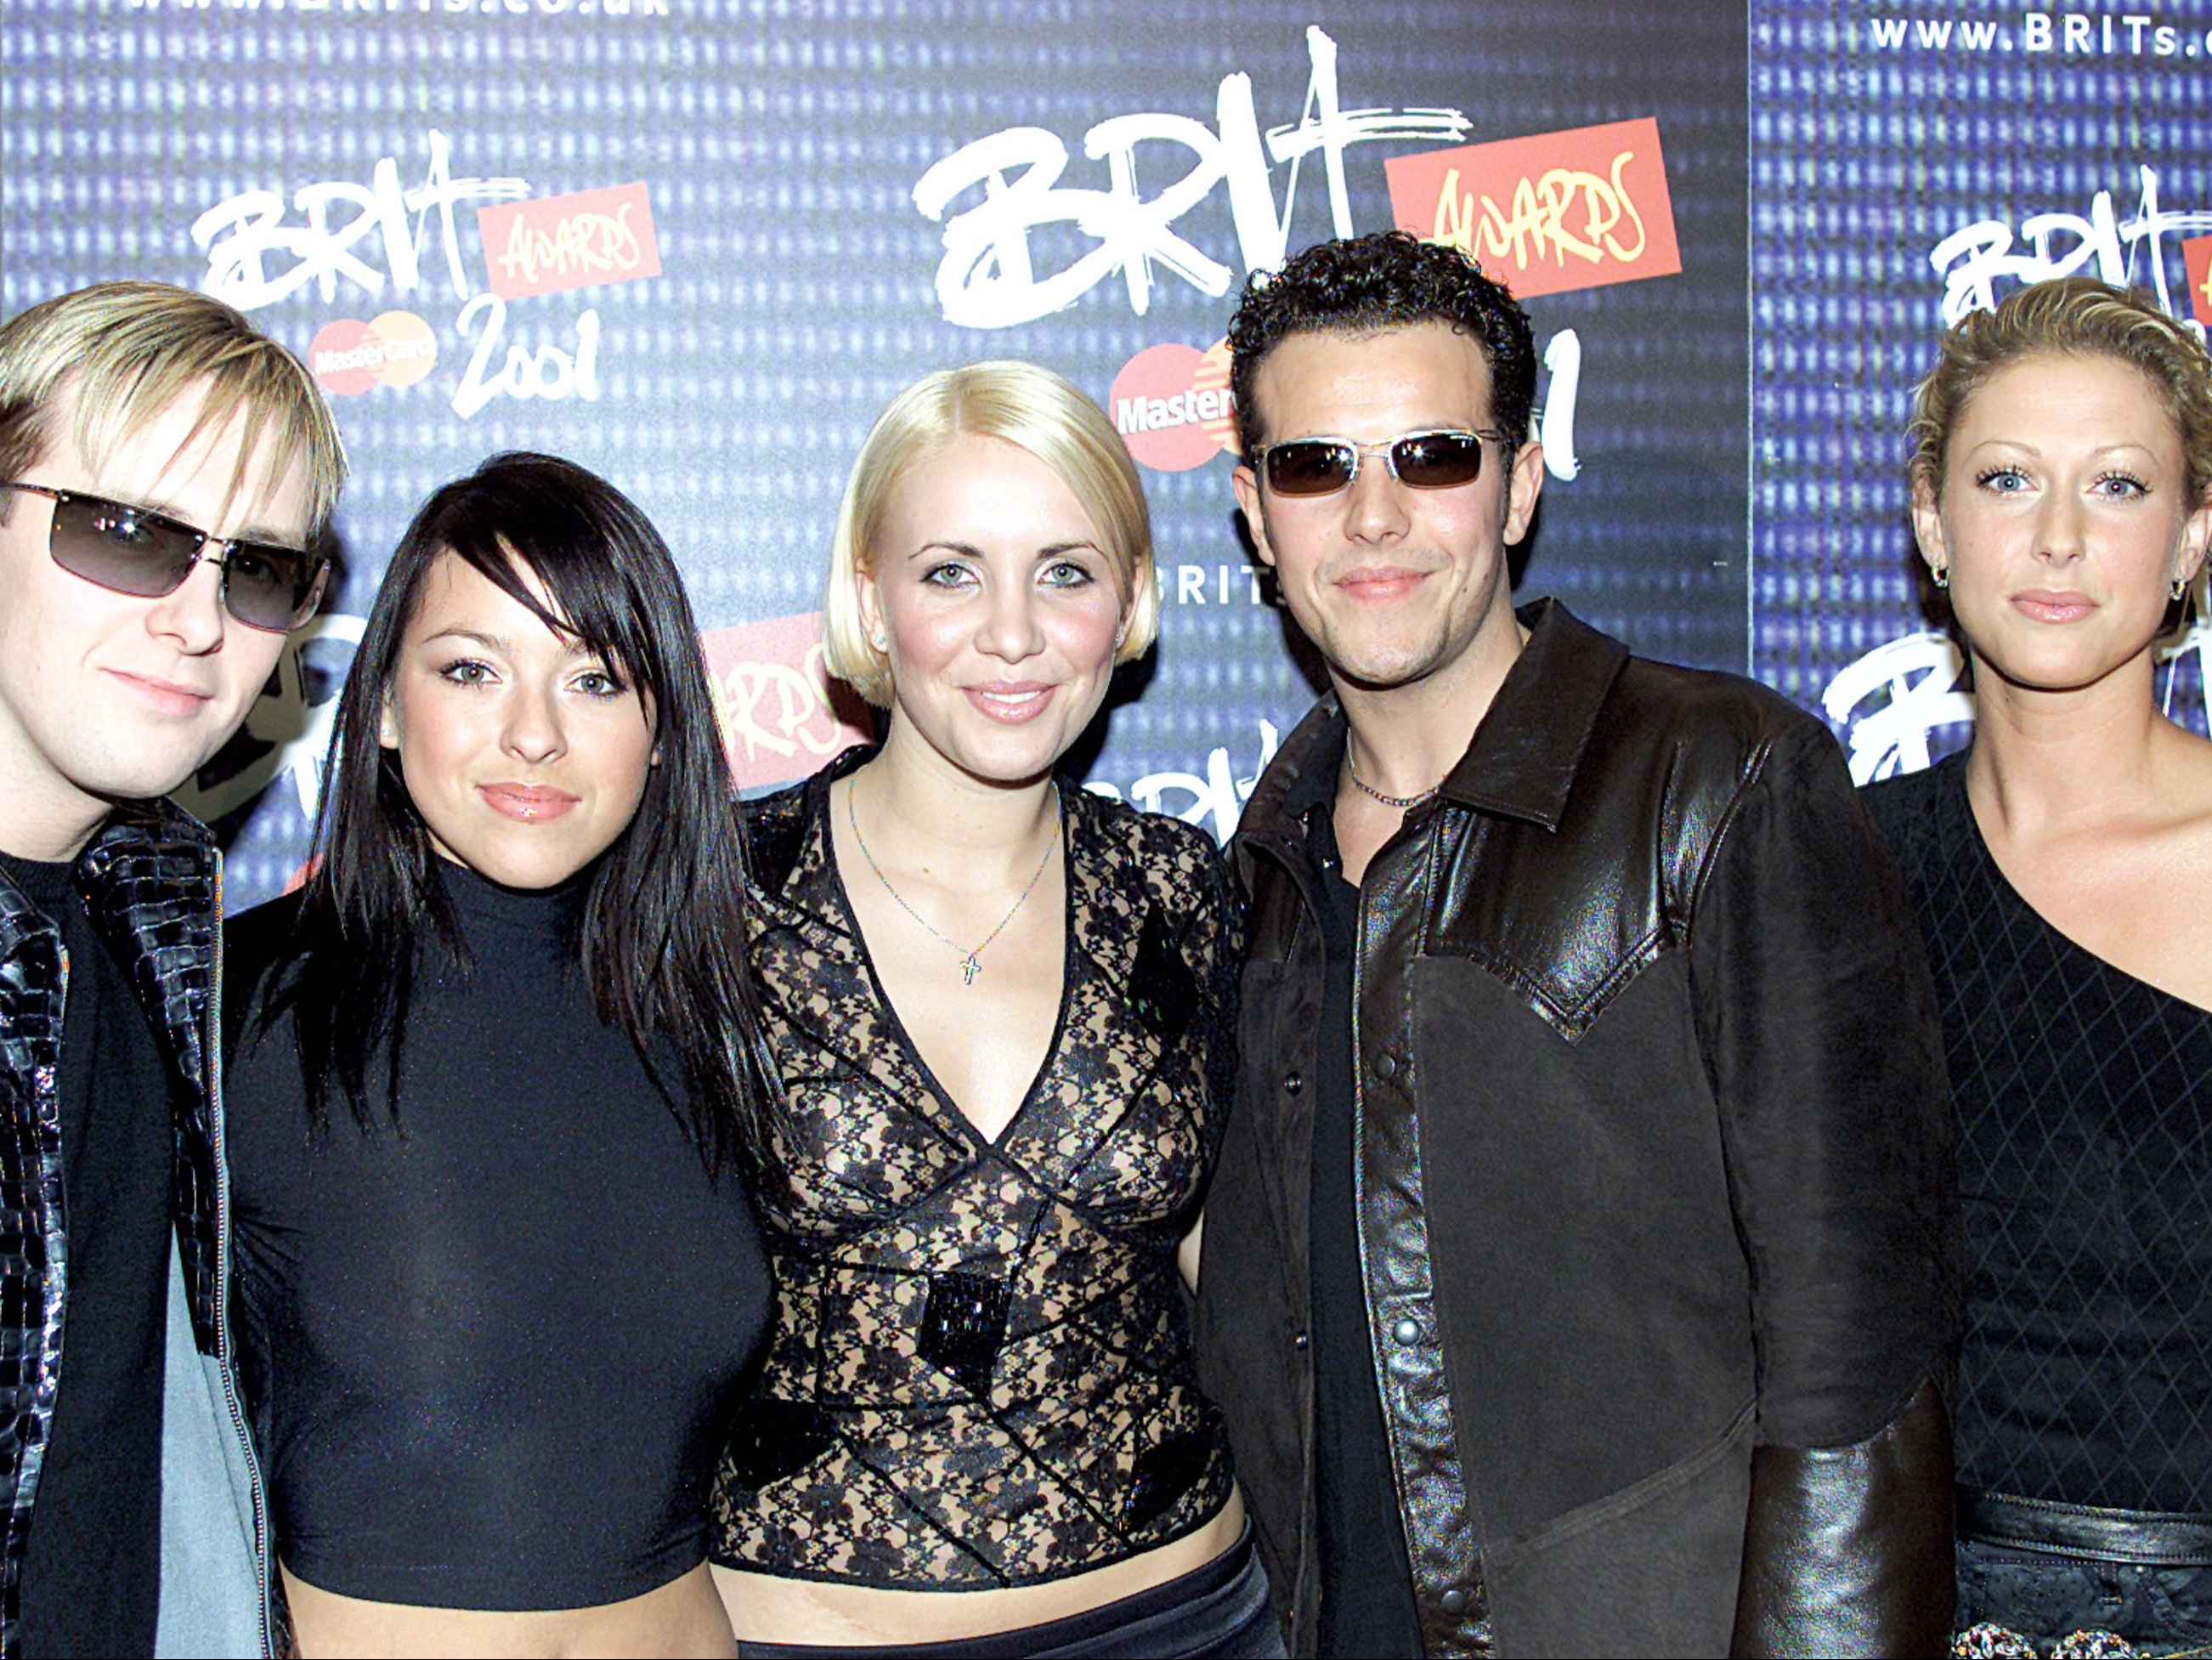 At the Brits in 2001: 'A Steps song has to be genderless'